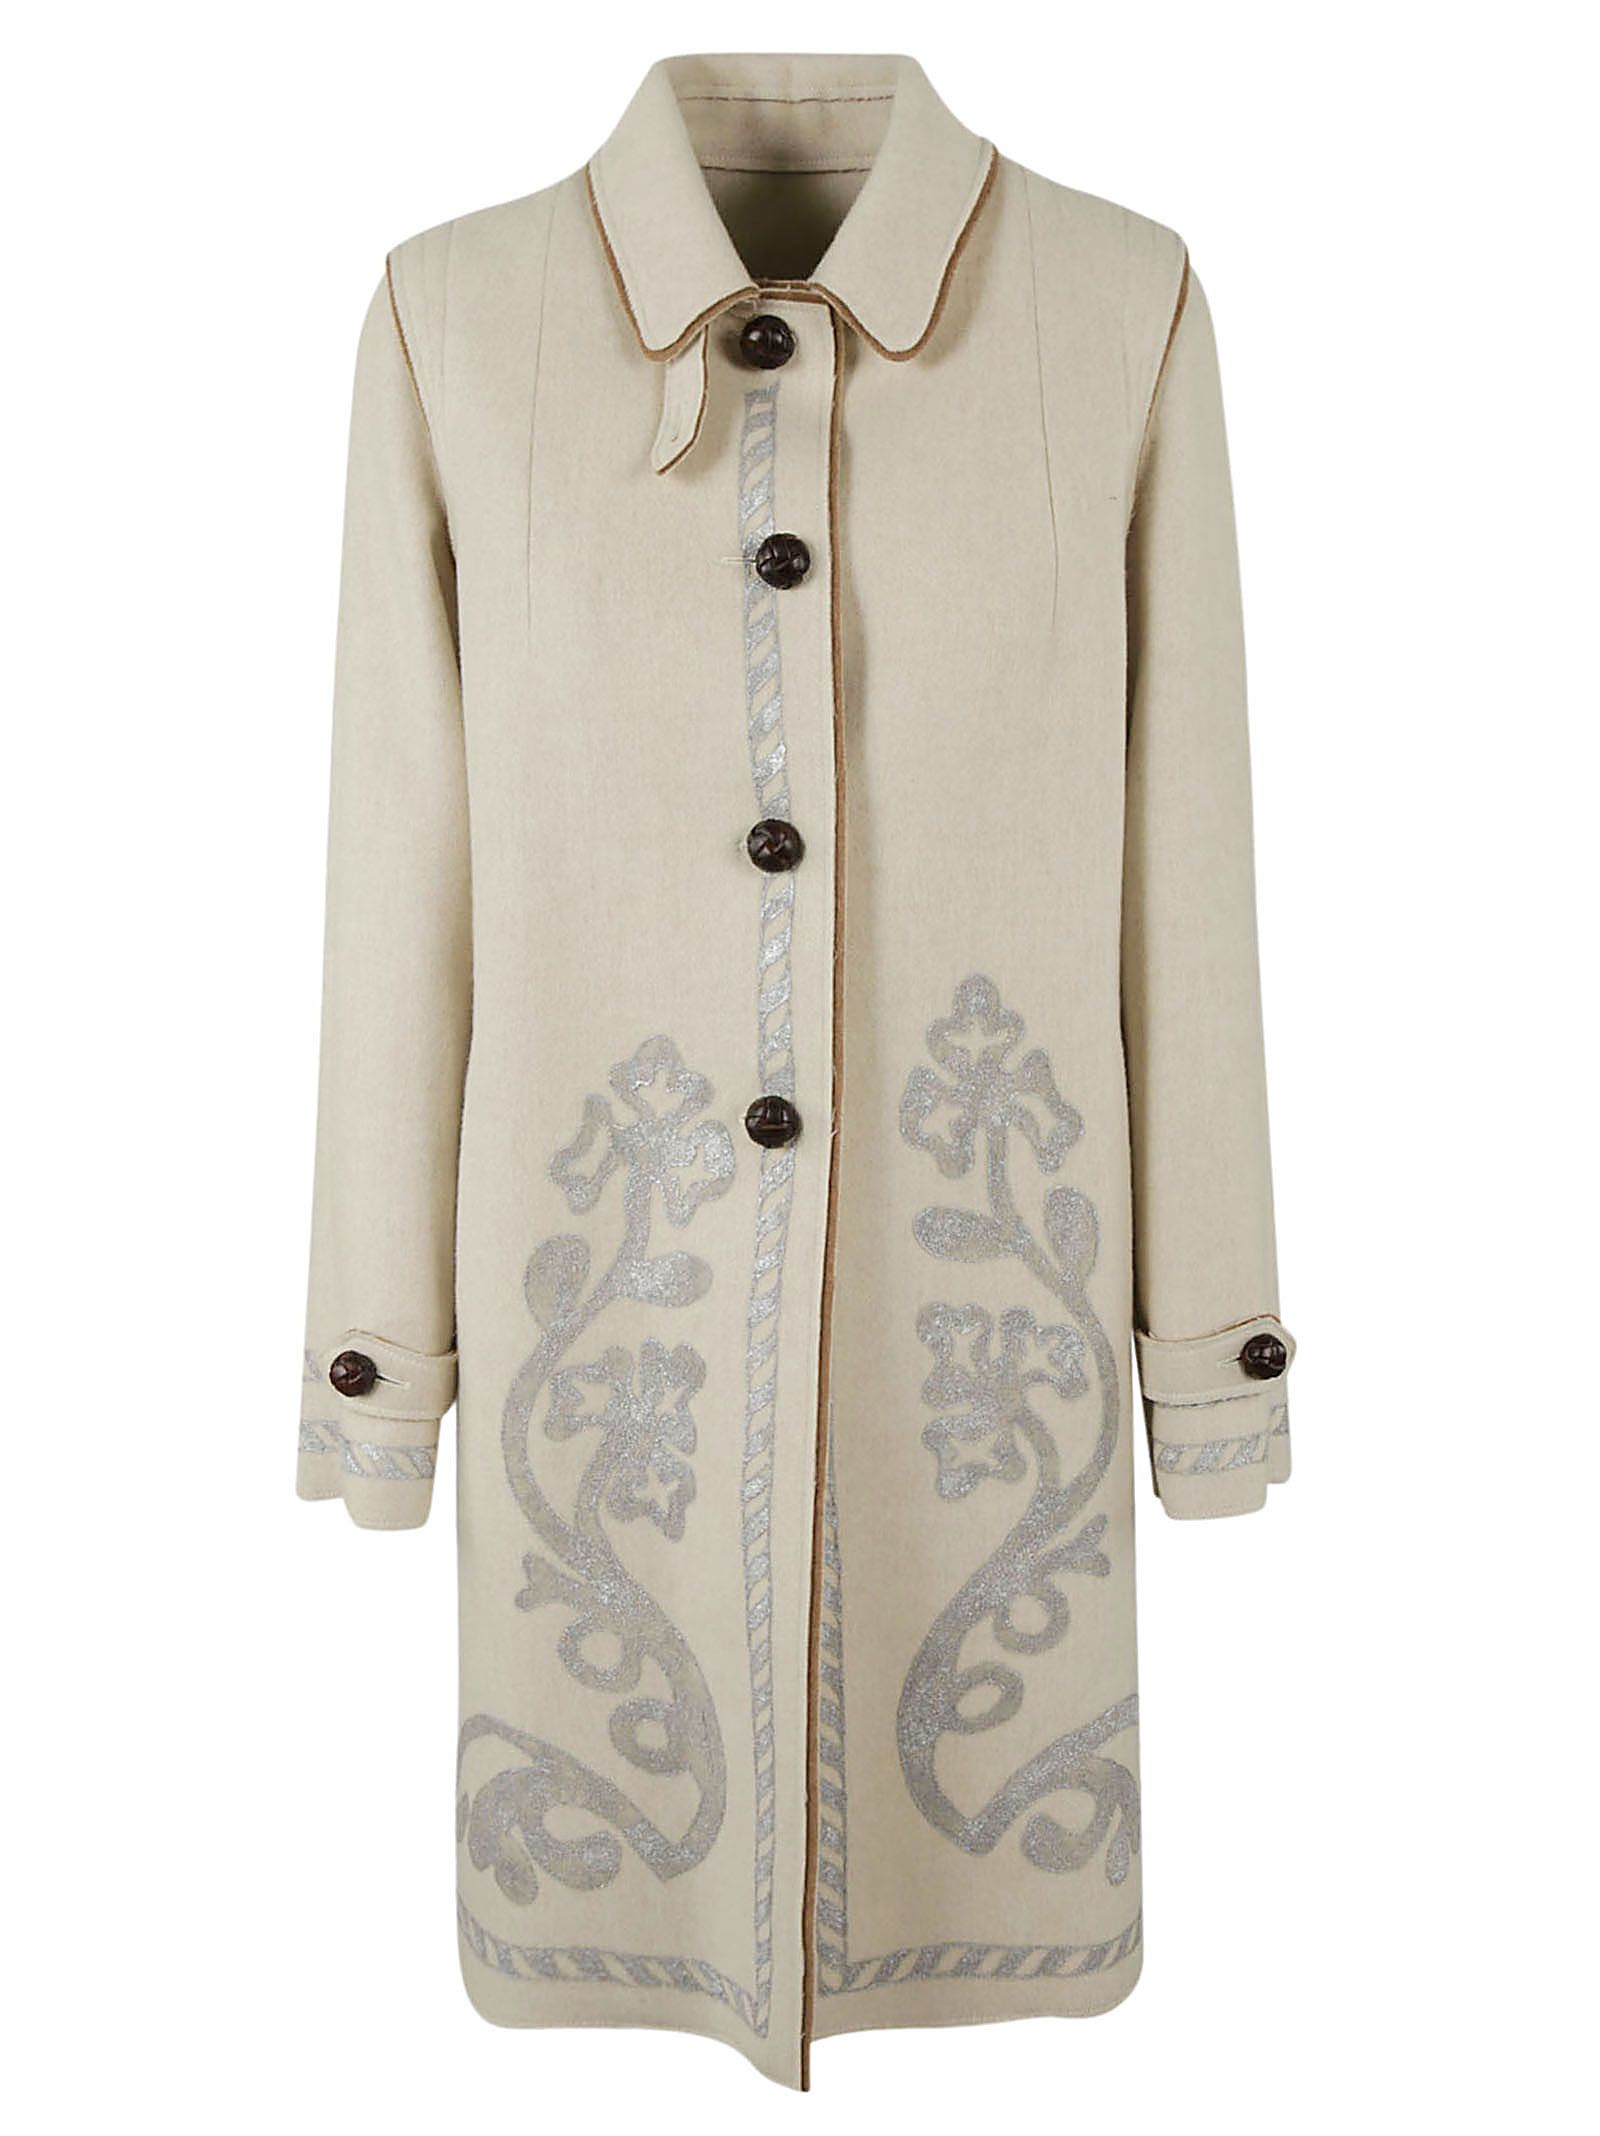 LODENTAL Lodental Single-Breasted Coat in Ivory